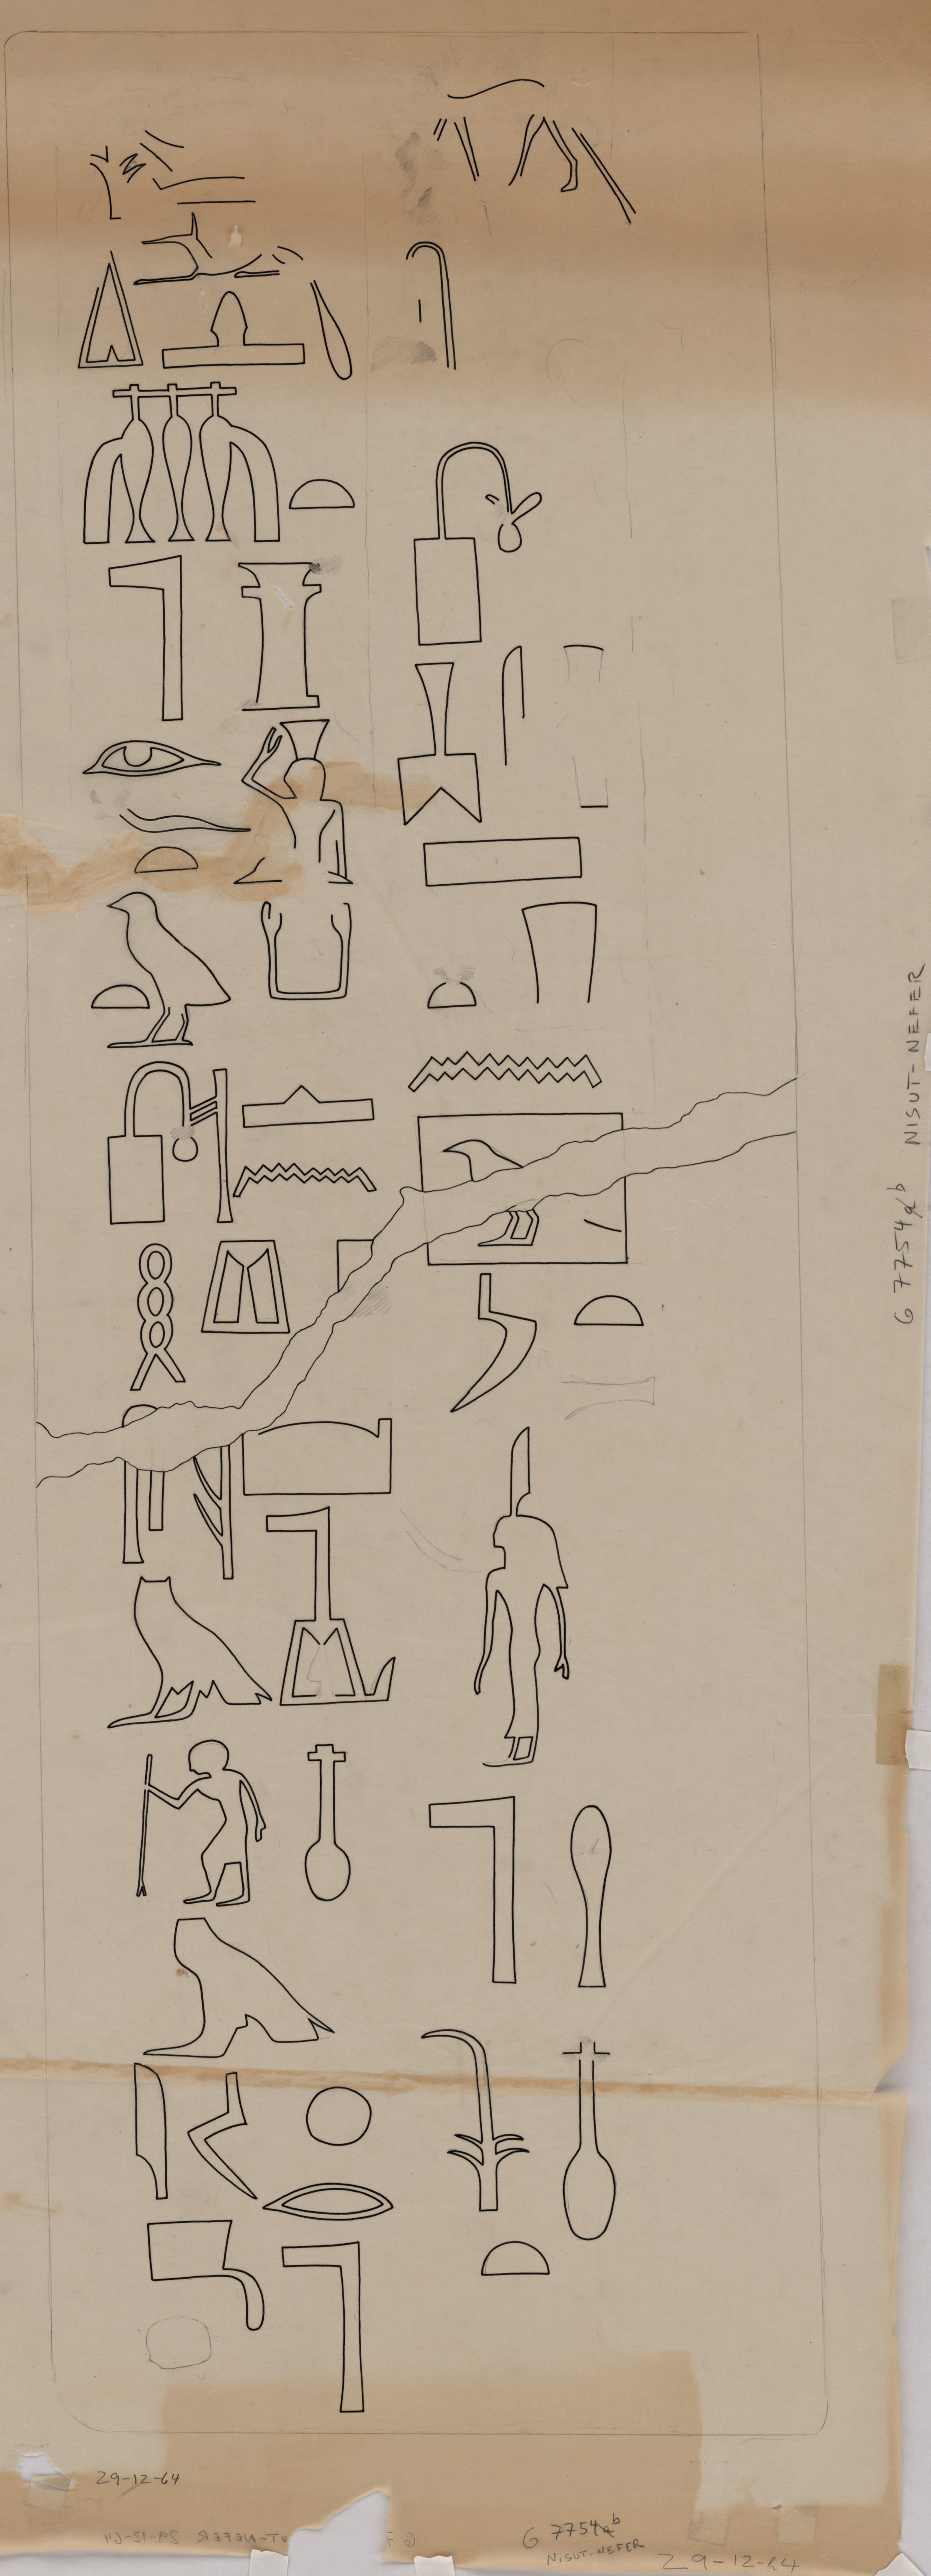 Drawings: G 7754, Shaft B: relief fragment